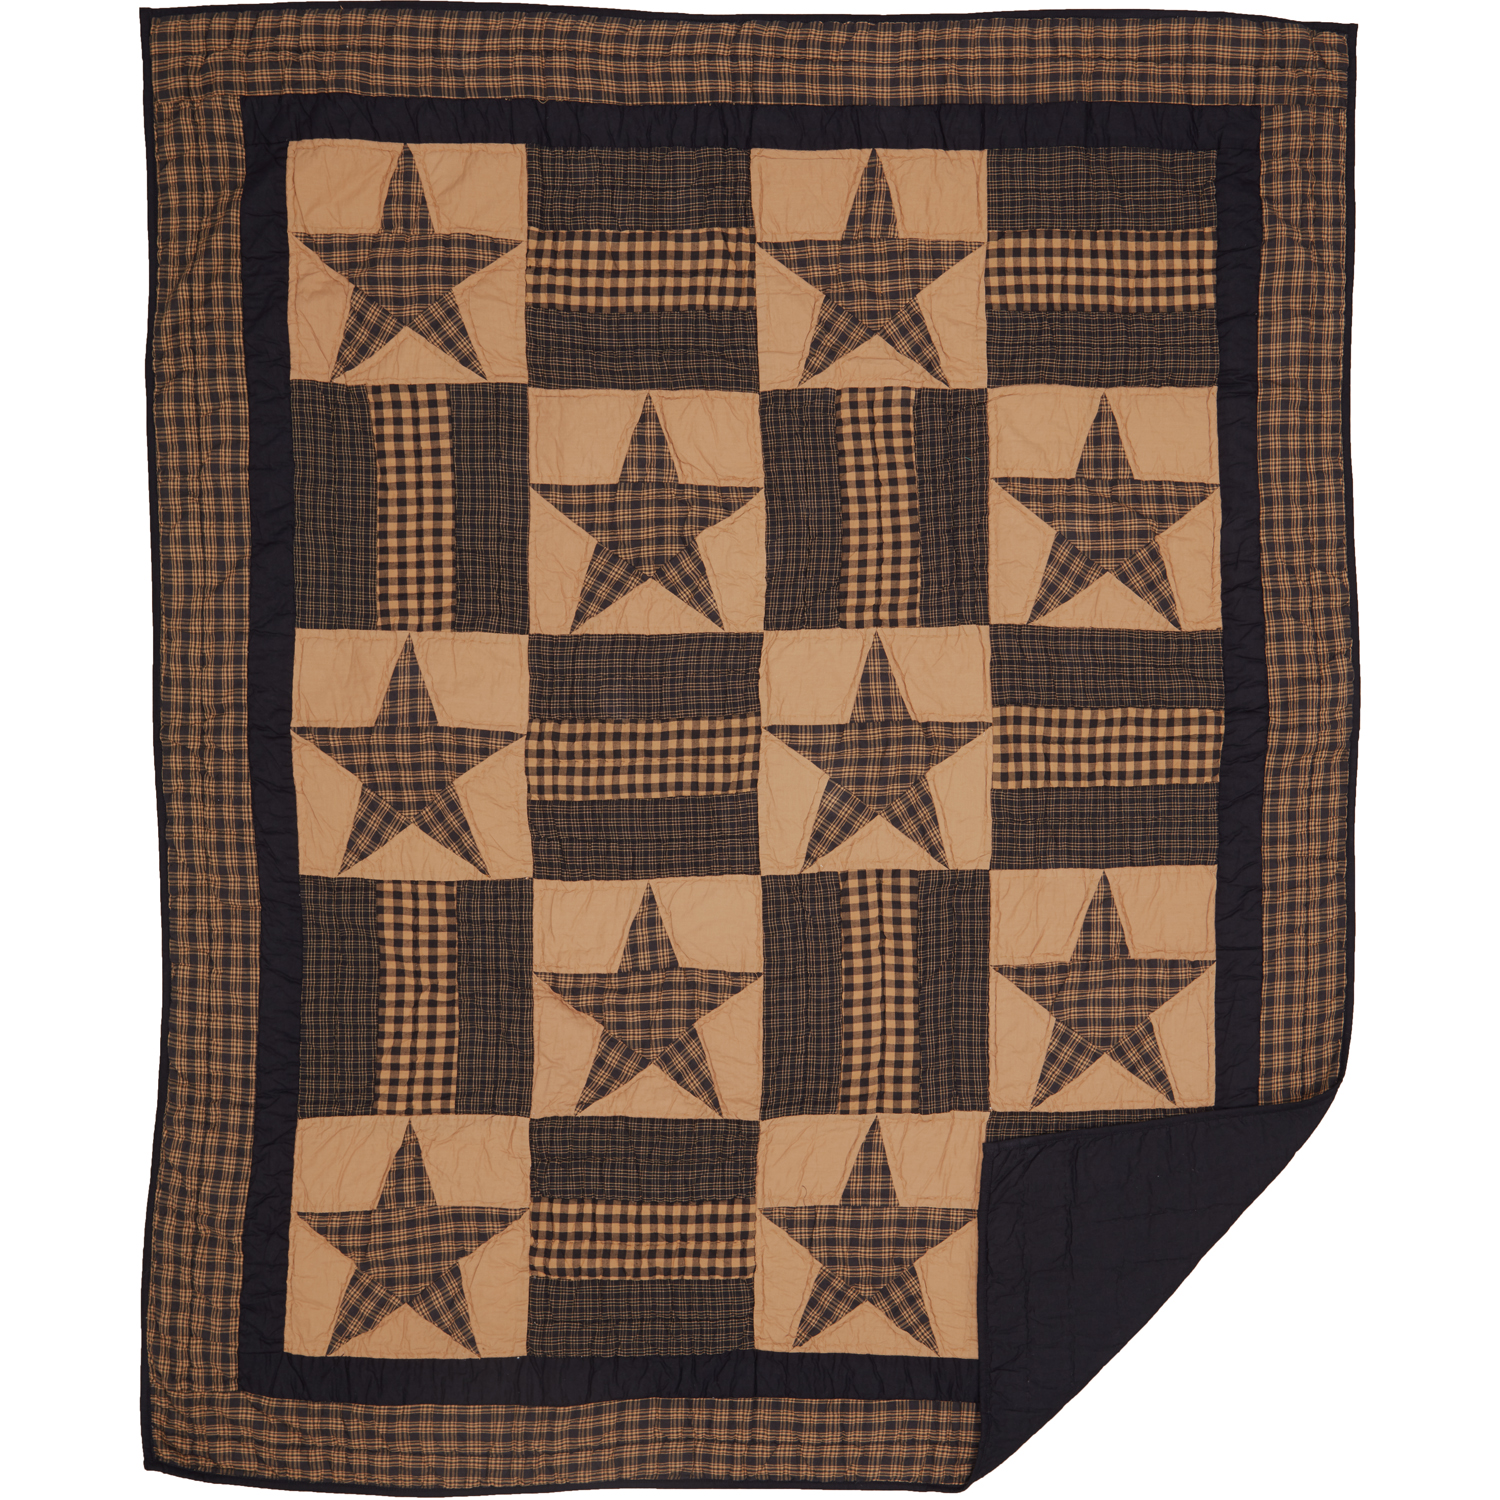 Teton-Star-Quilted-Throw-60x50-image-2